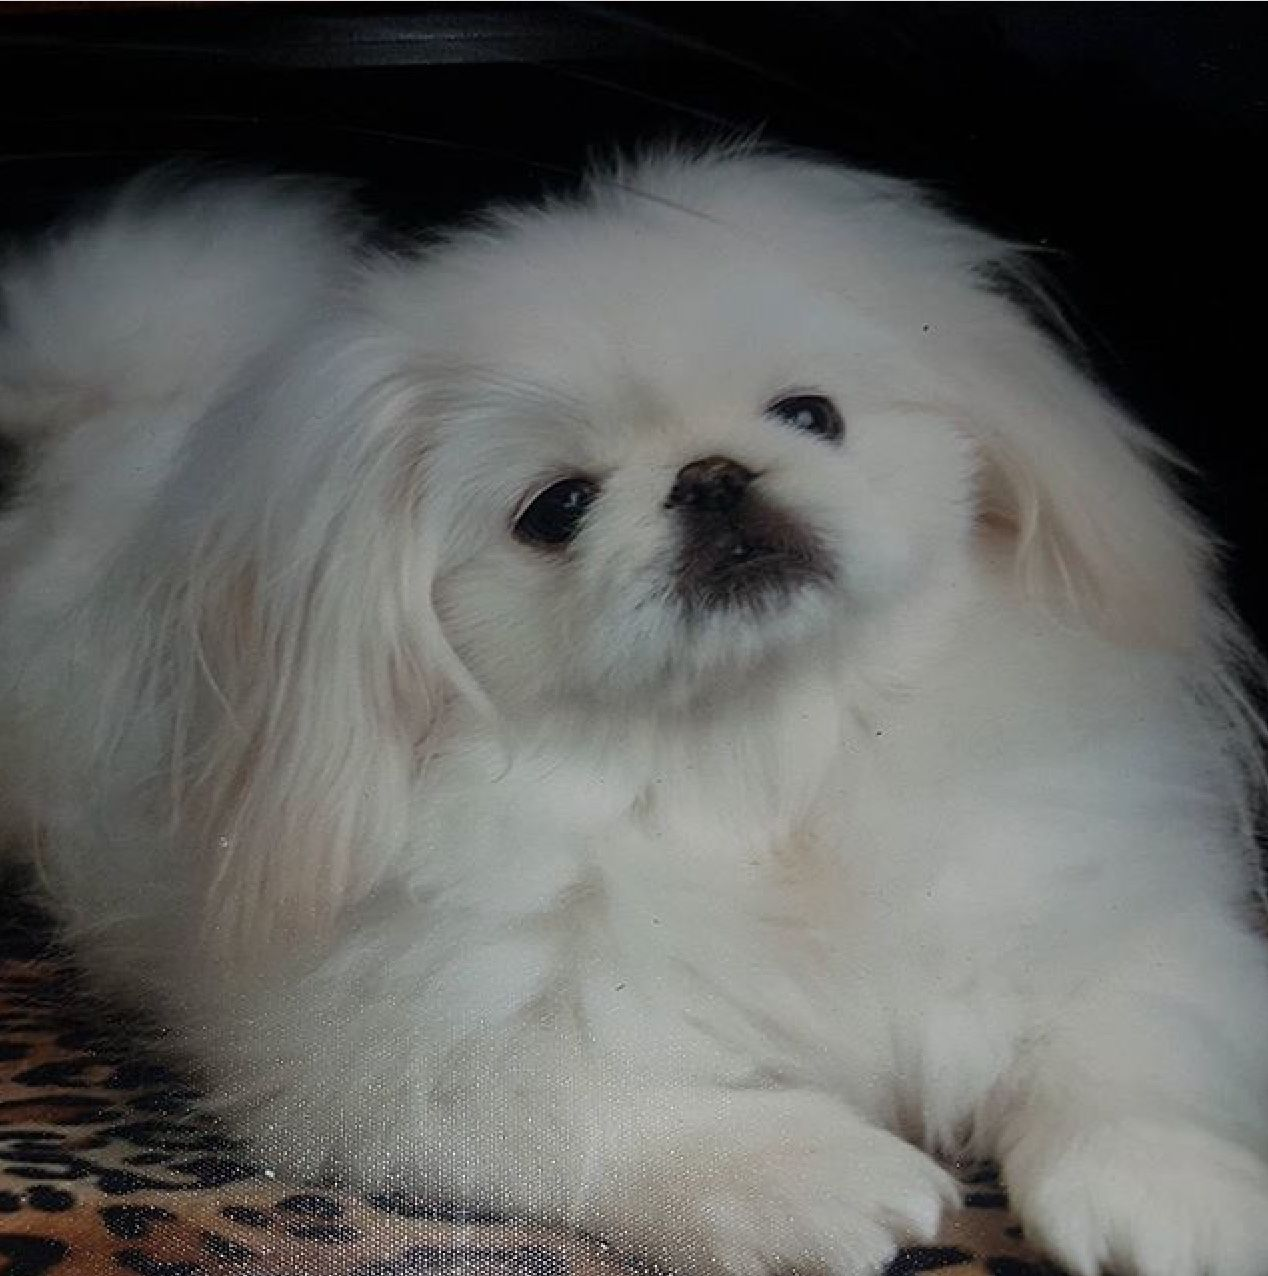 Pin By Paty Ds On Mascotas Pekingese Puppies Pekingese Dogs